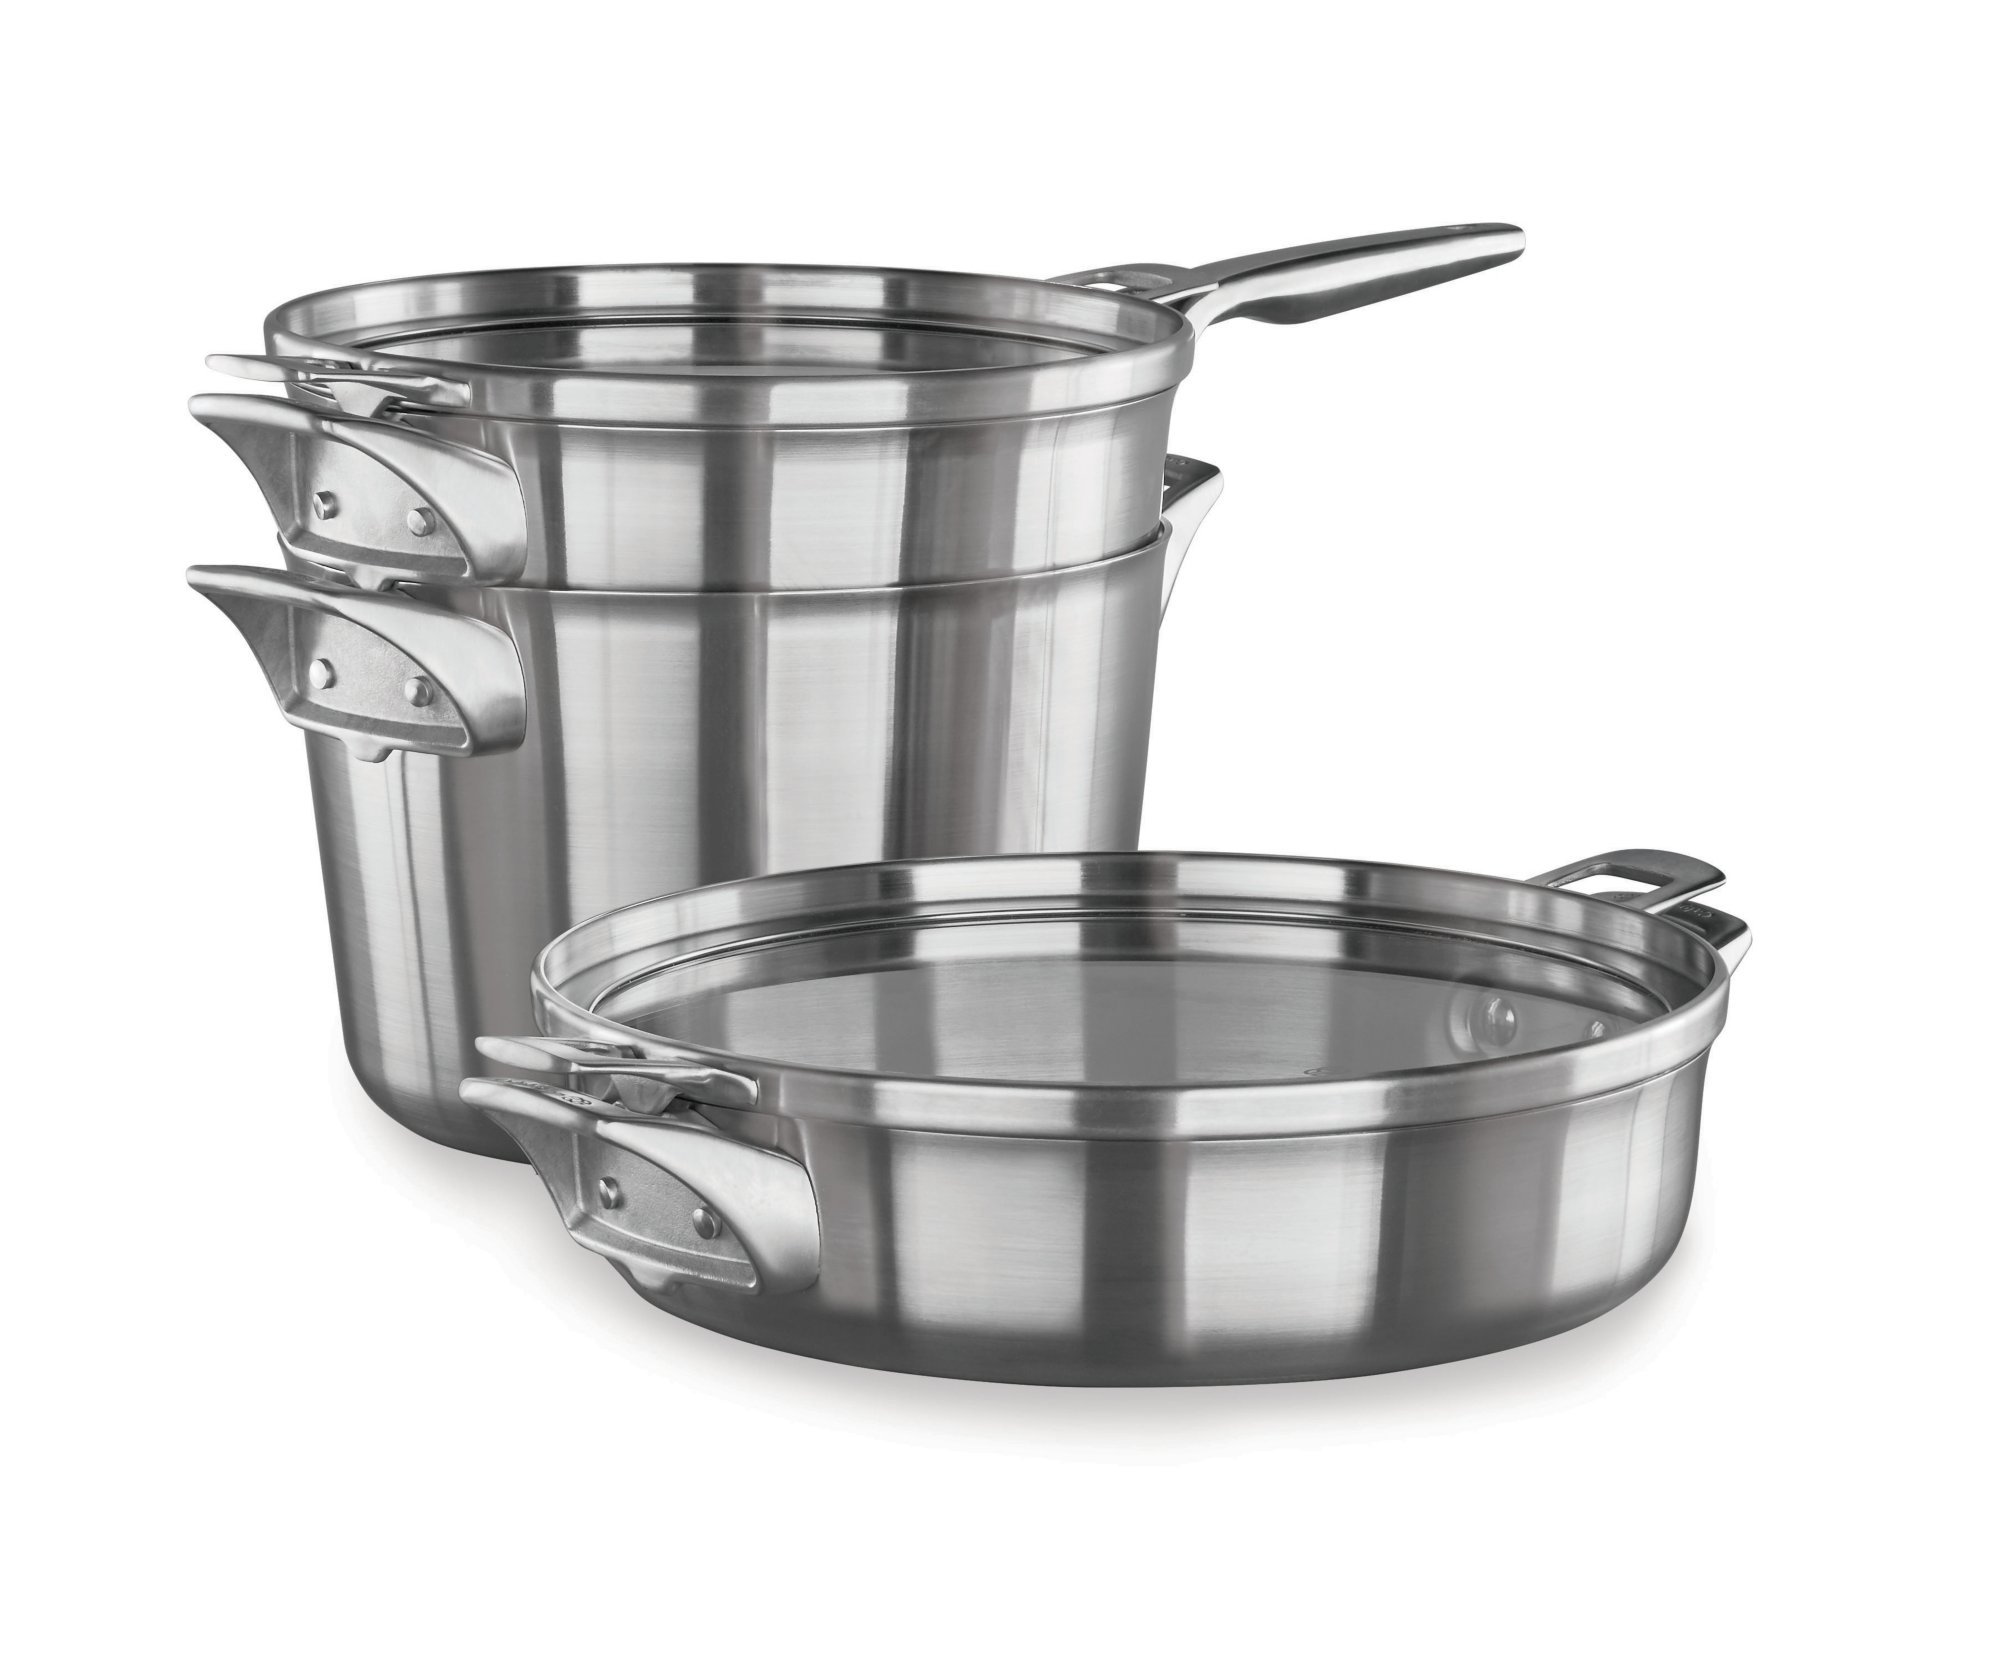 Stainless Steel Cookware Pots Amp Pans